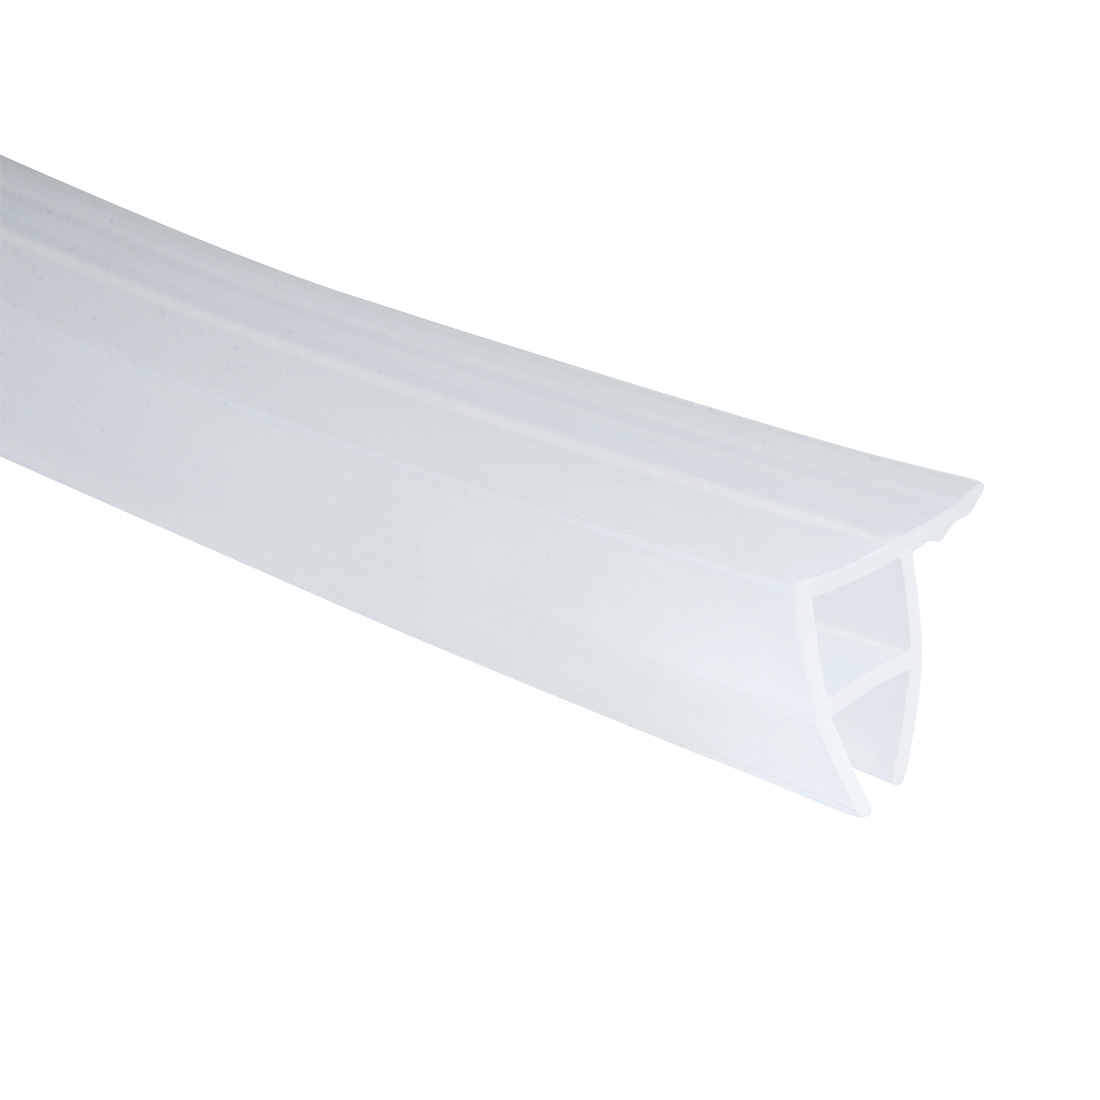 2.5M 98-inch Frameless Window Shower Door Seal Clear for 10mm Glass